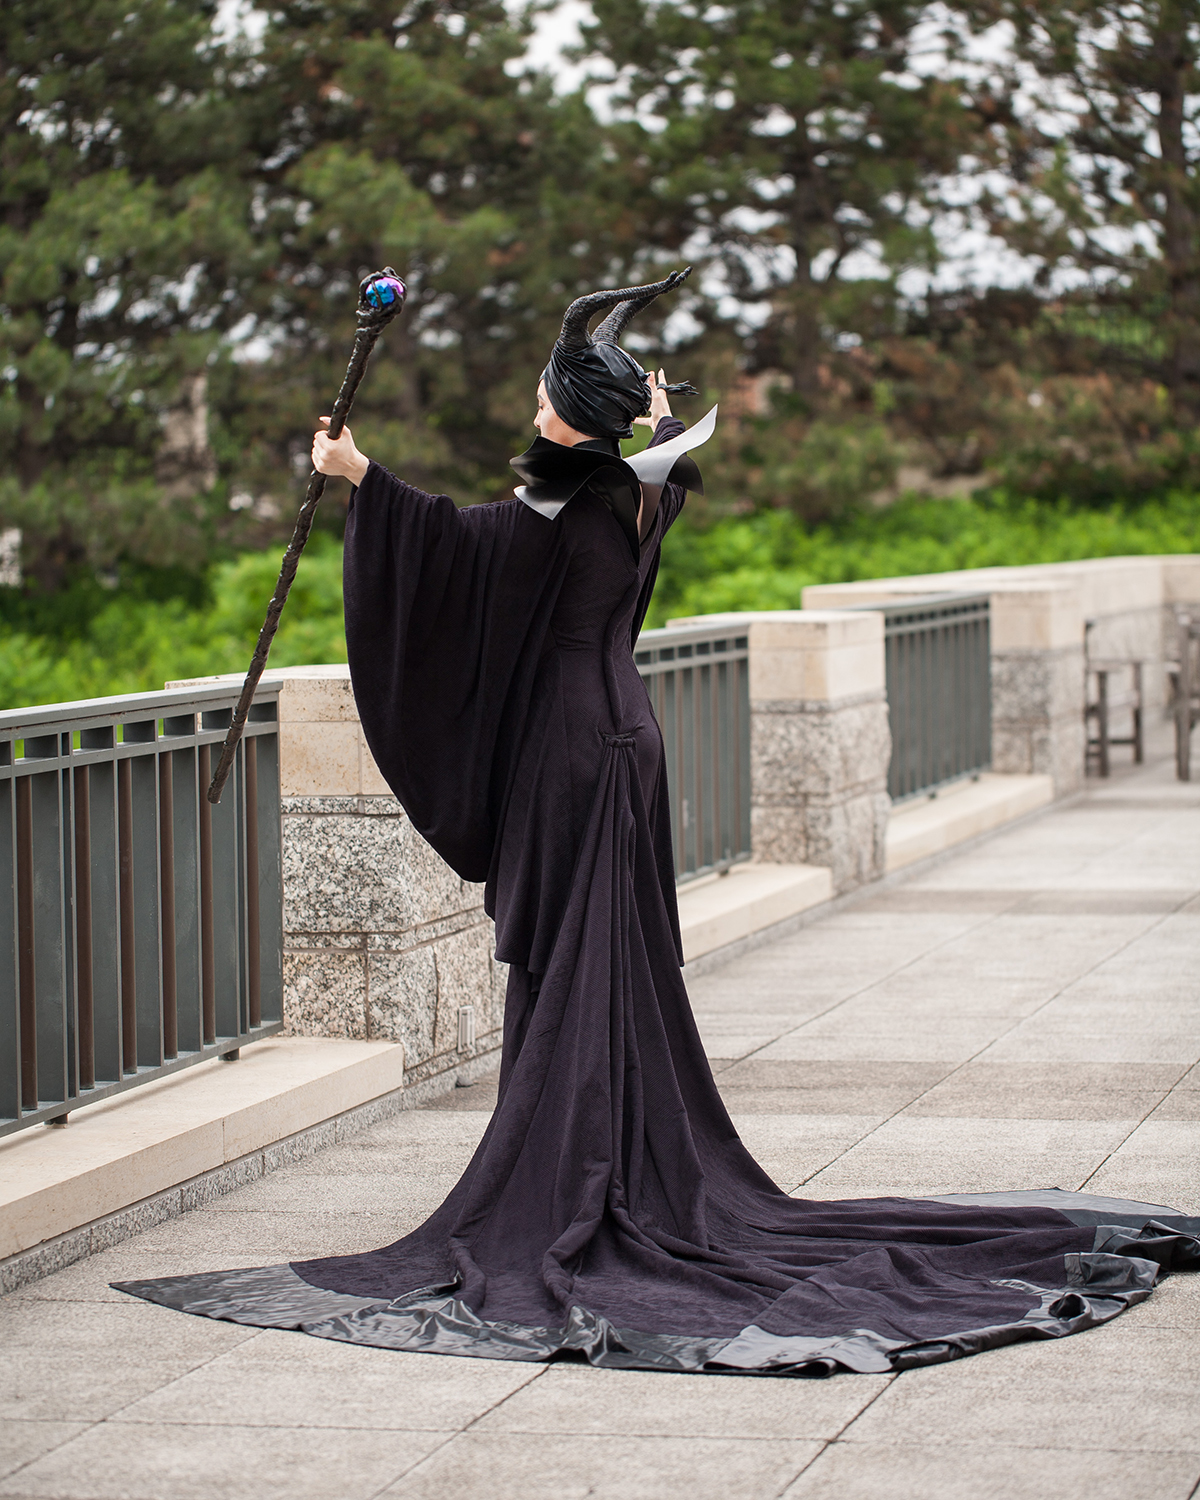 A cosplayer dressed in the full Maleficent costume.